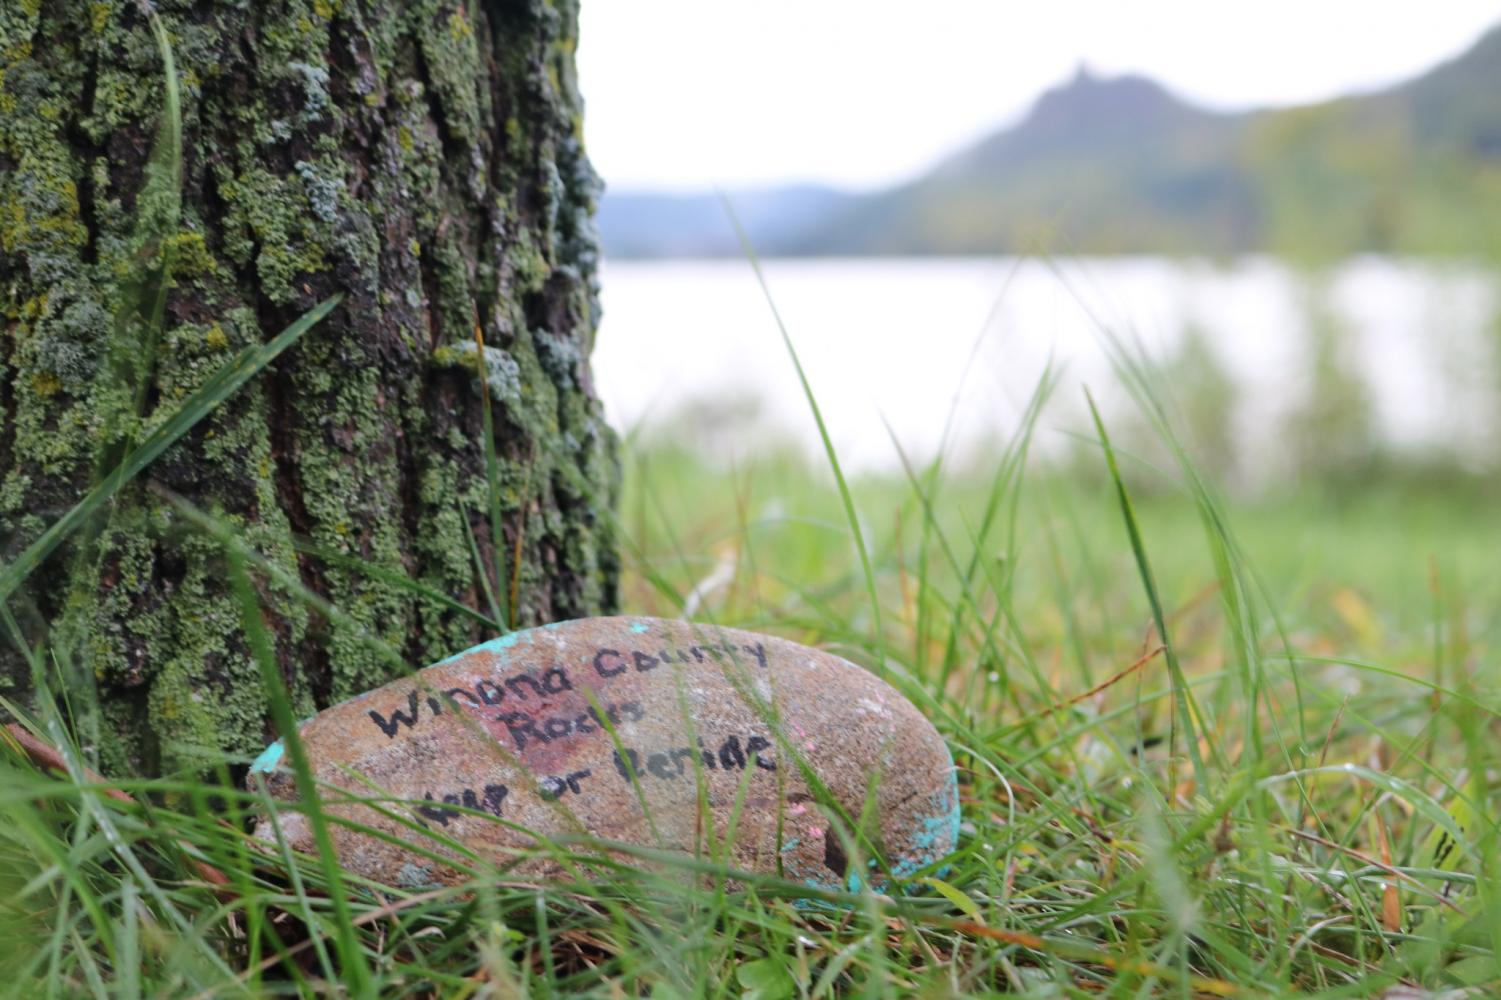 """The """"Winona County Rocks"""" Facebook group paints and hides rocks around Winona. People who find the rocks are encouraged to share the photo to the page and either keep or relocate the rock for someone else to find."""